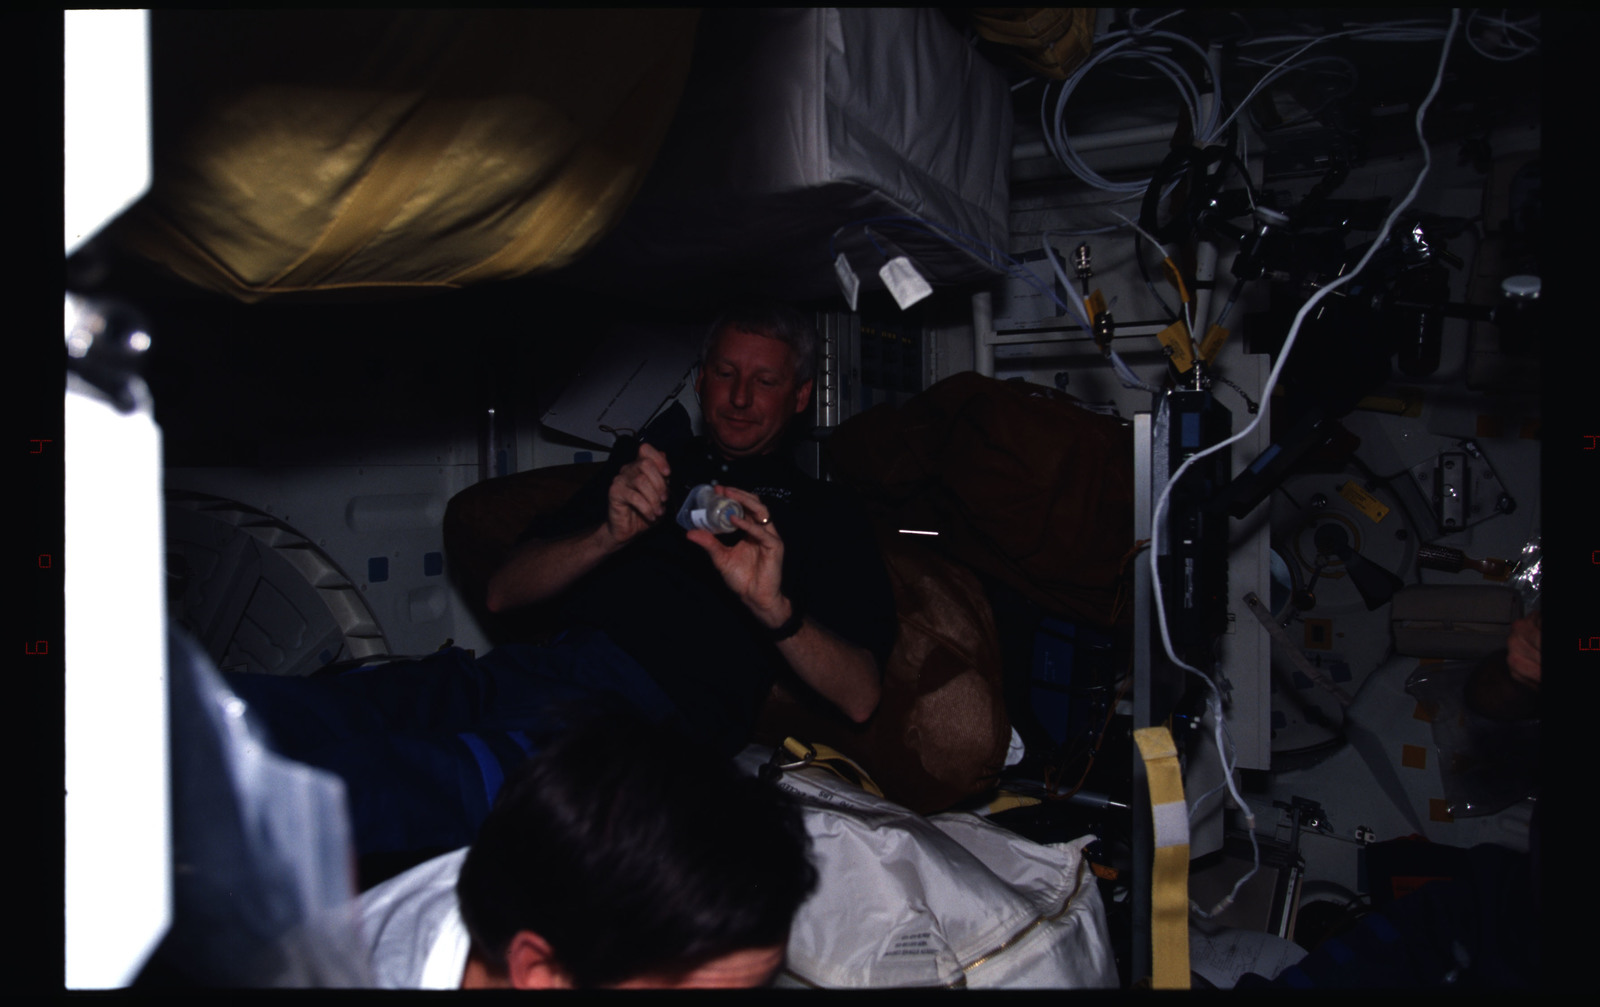 STS082-381-021 - STS-082 - Crewmember activities in the shuttle middeck on day off